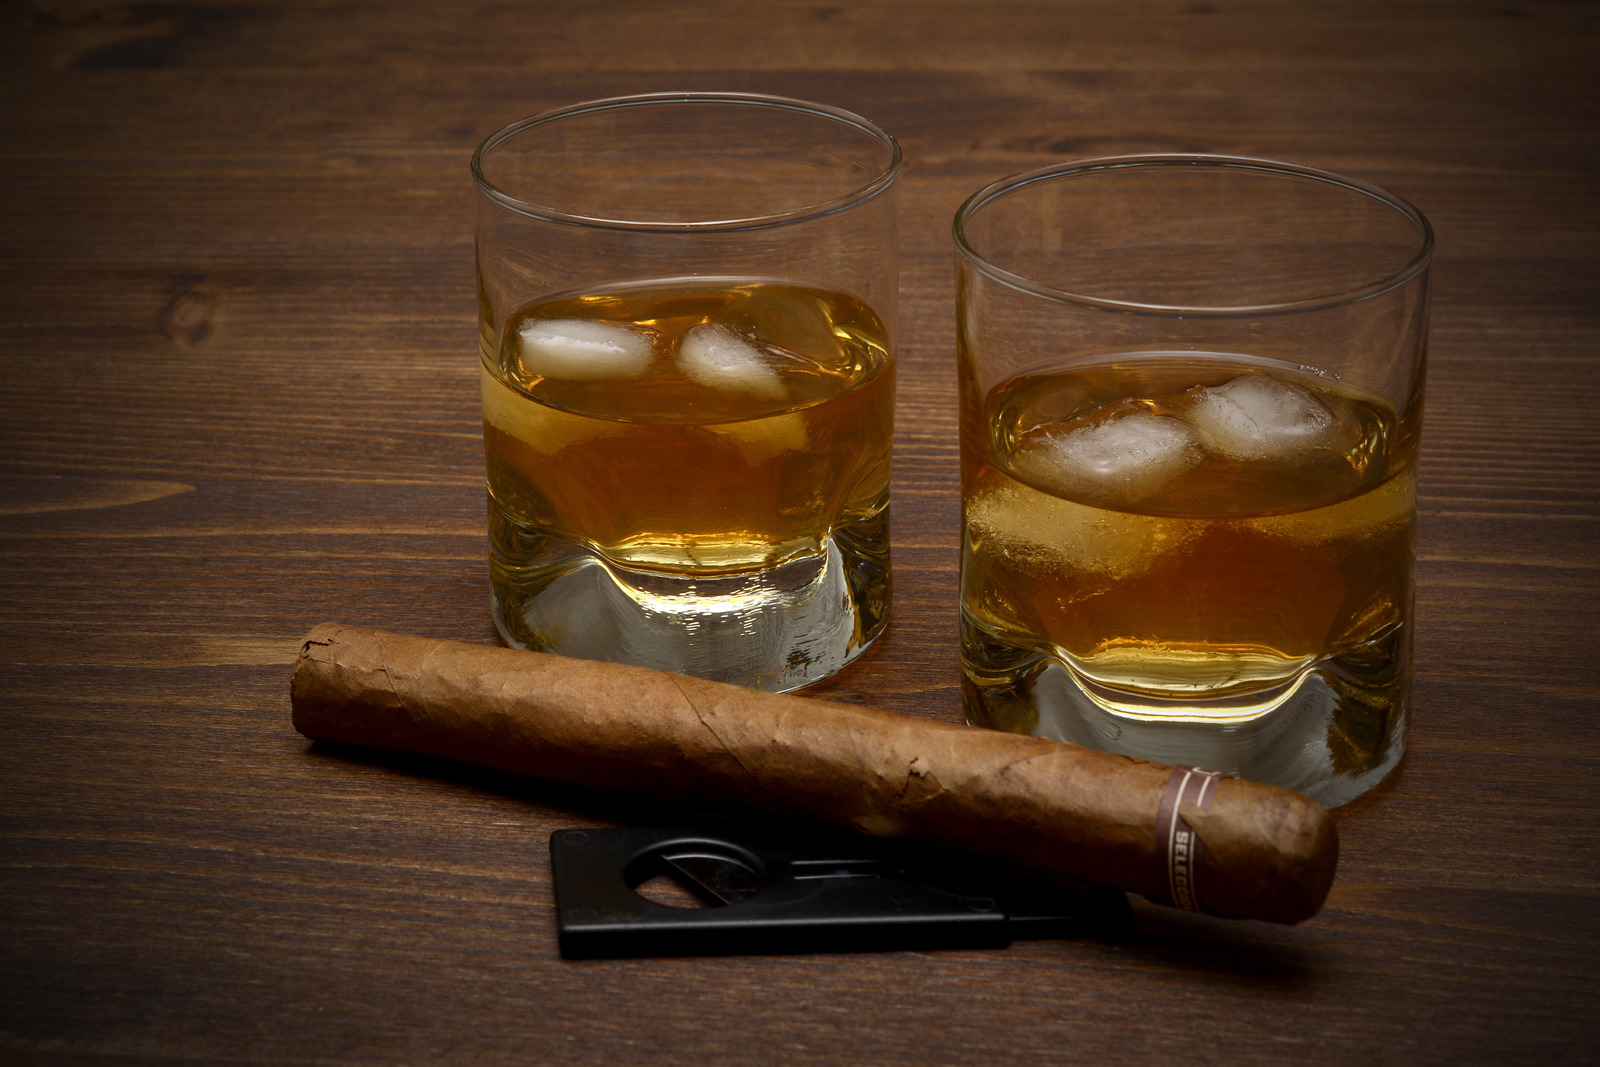 2 square whiskey glasses filled with whiskey and ice cubes. In front of it is a cigar